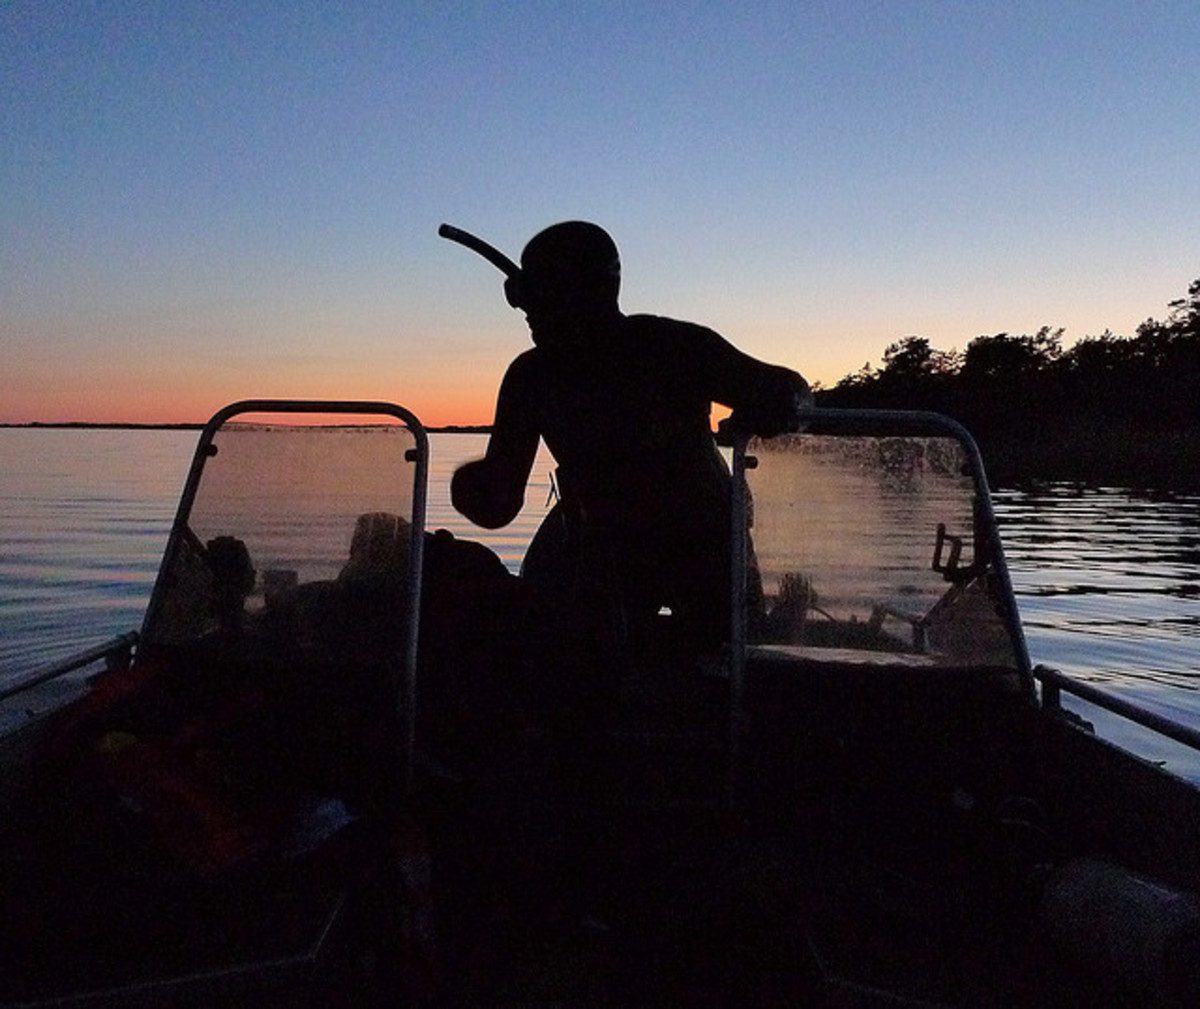 Preparing for a night spearfishing adventure